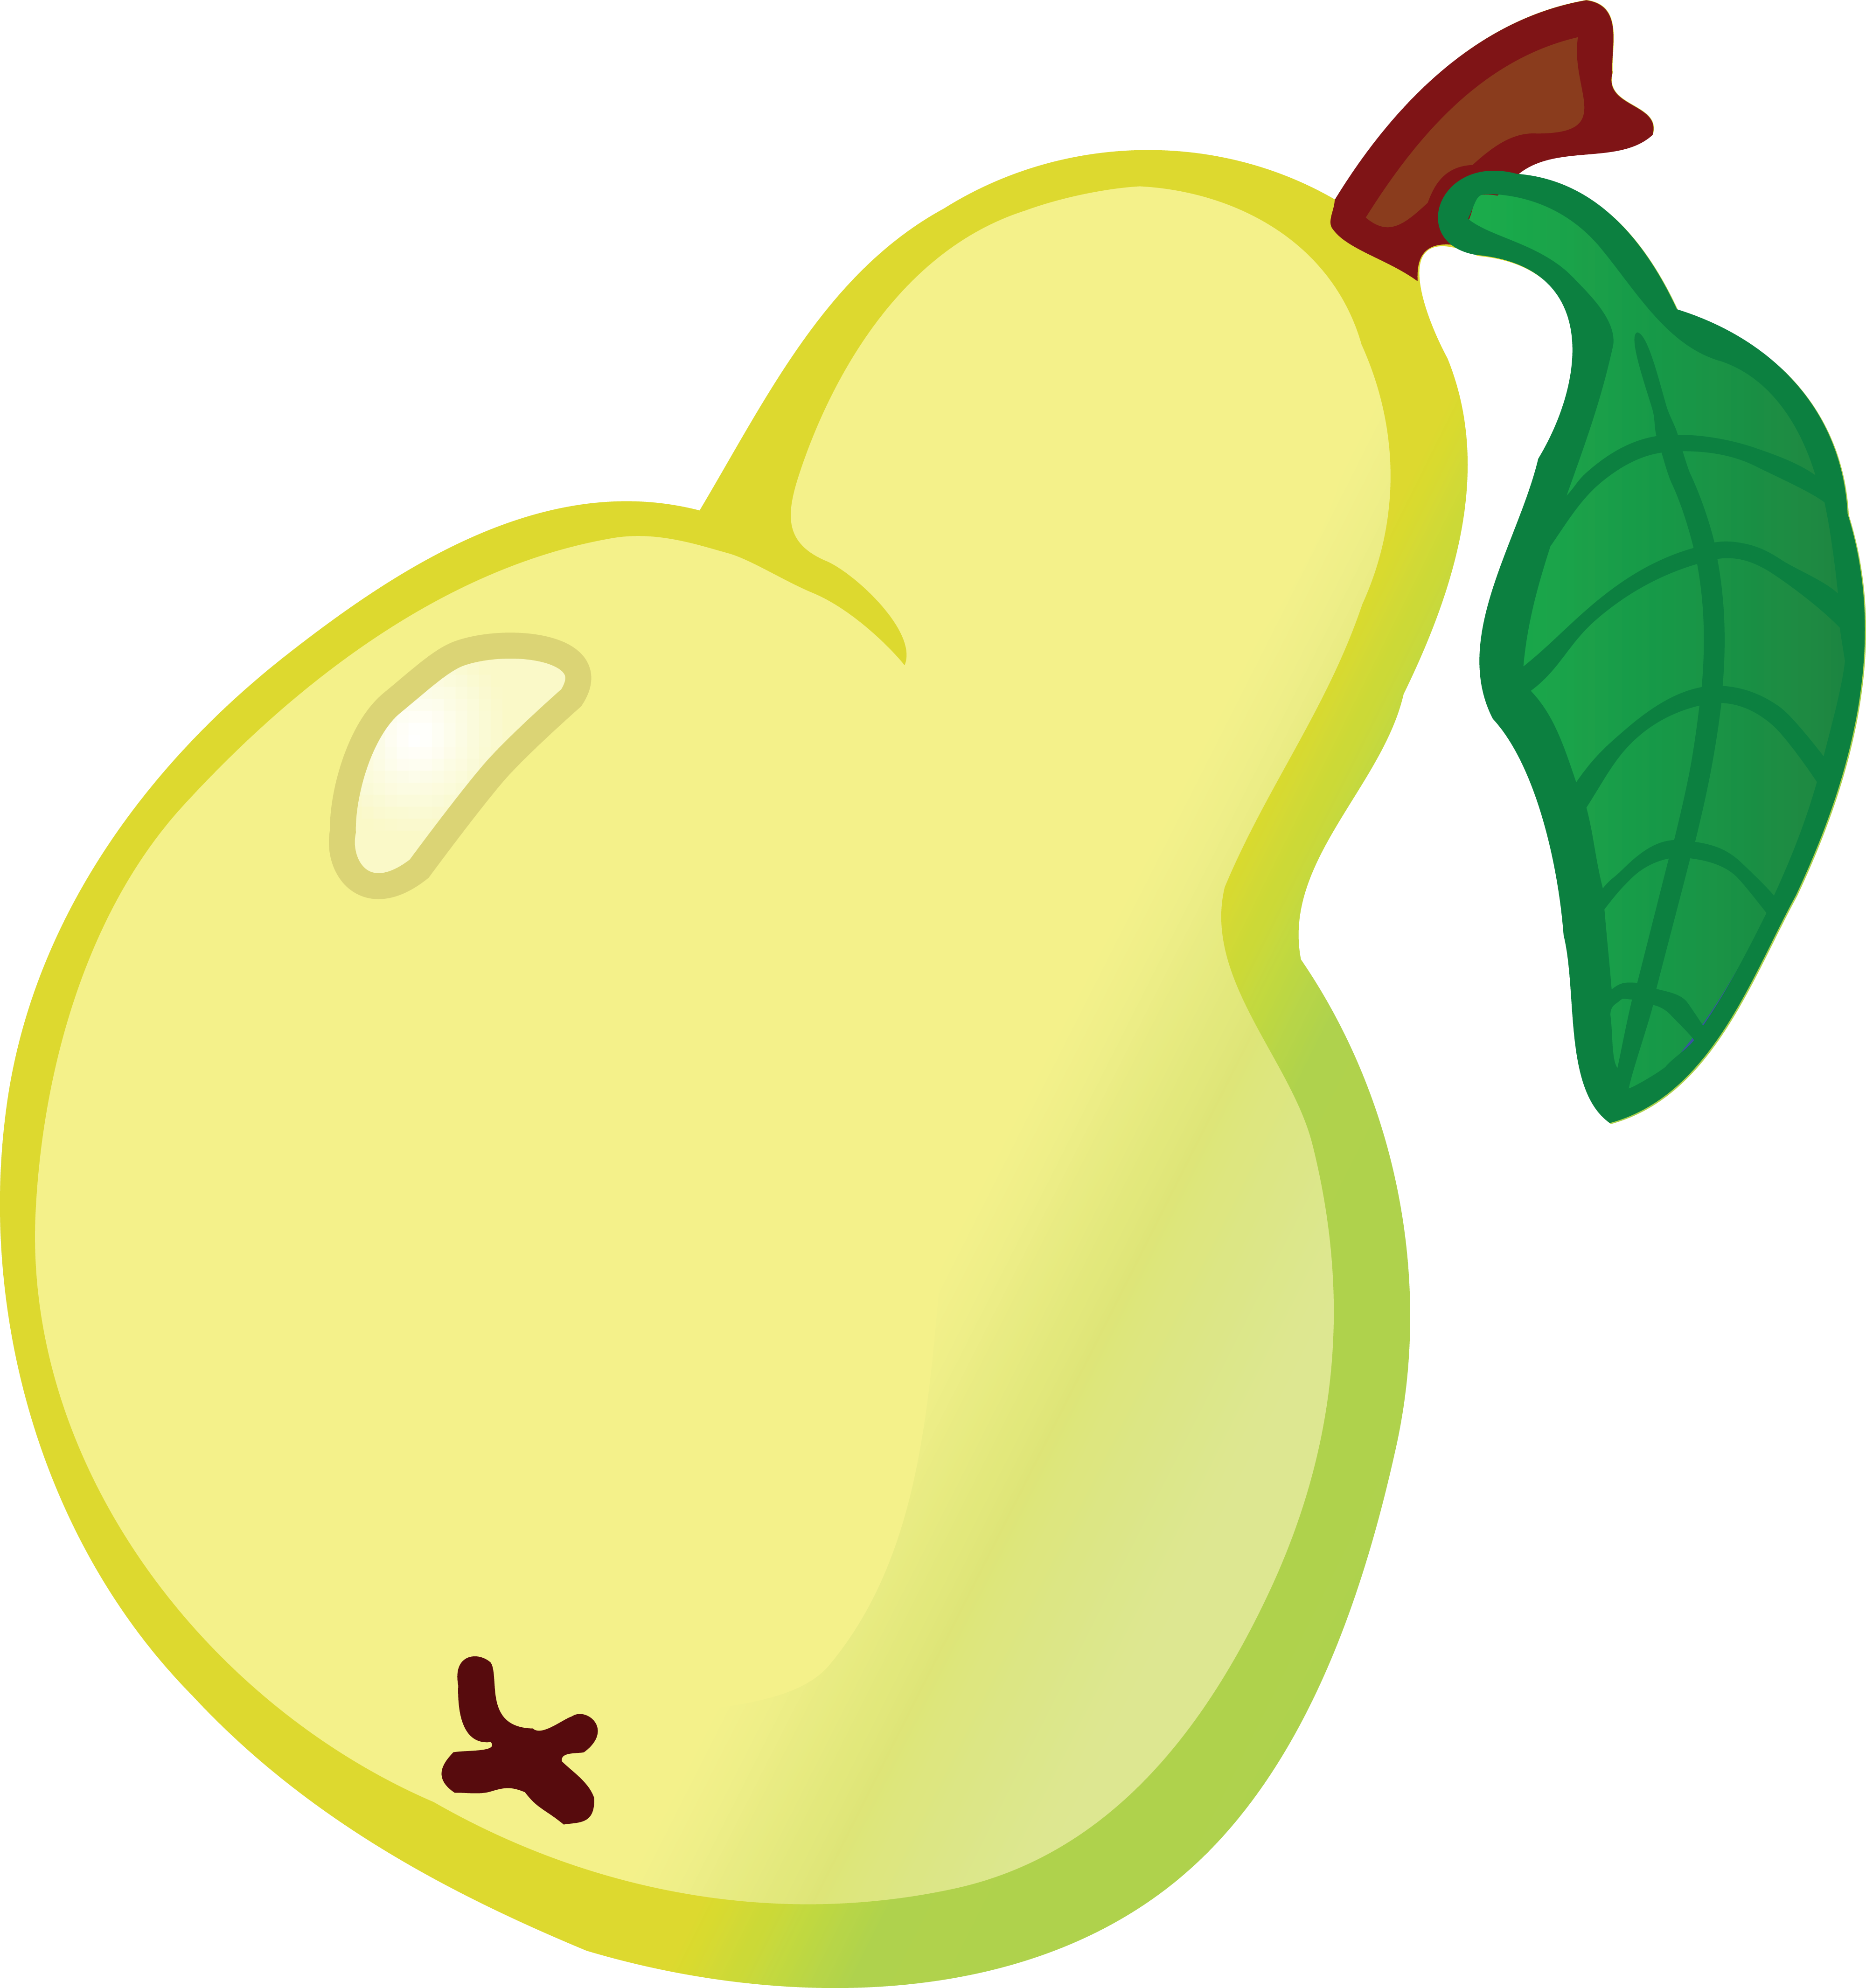 Free Clipart Of A Pear